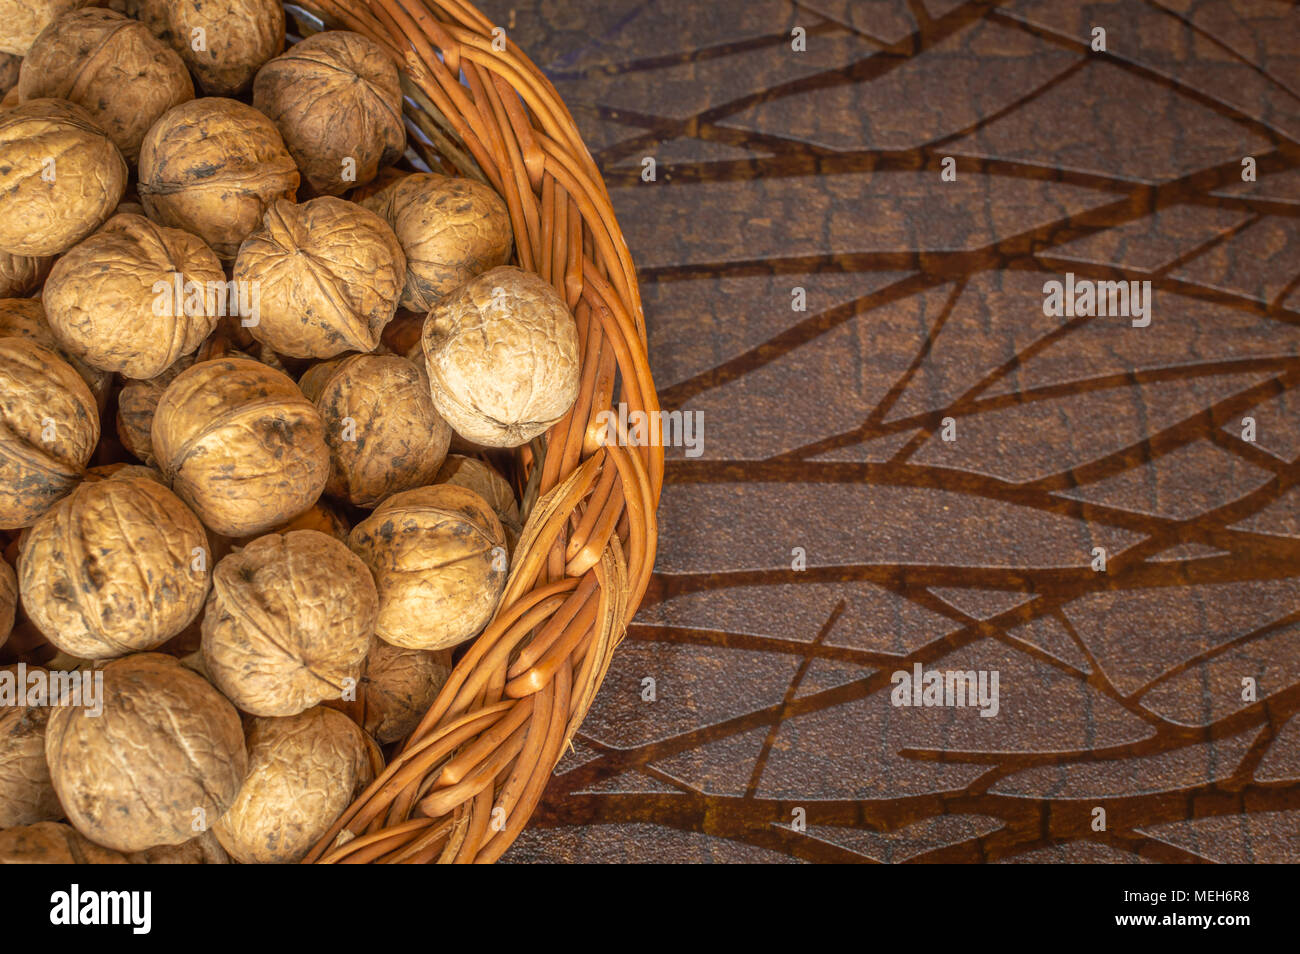 Walnuts in a wooden bowl on a wooden table walnuts with shells - Stock Image